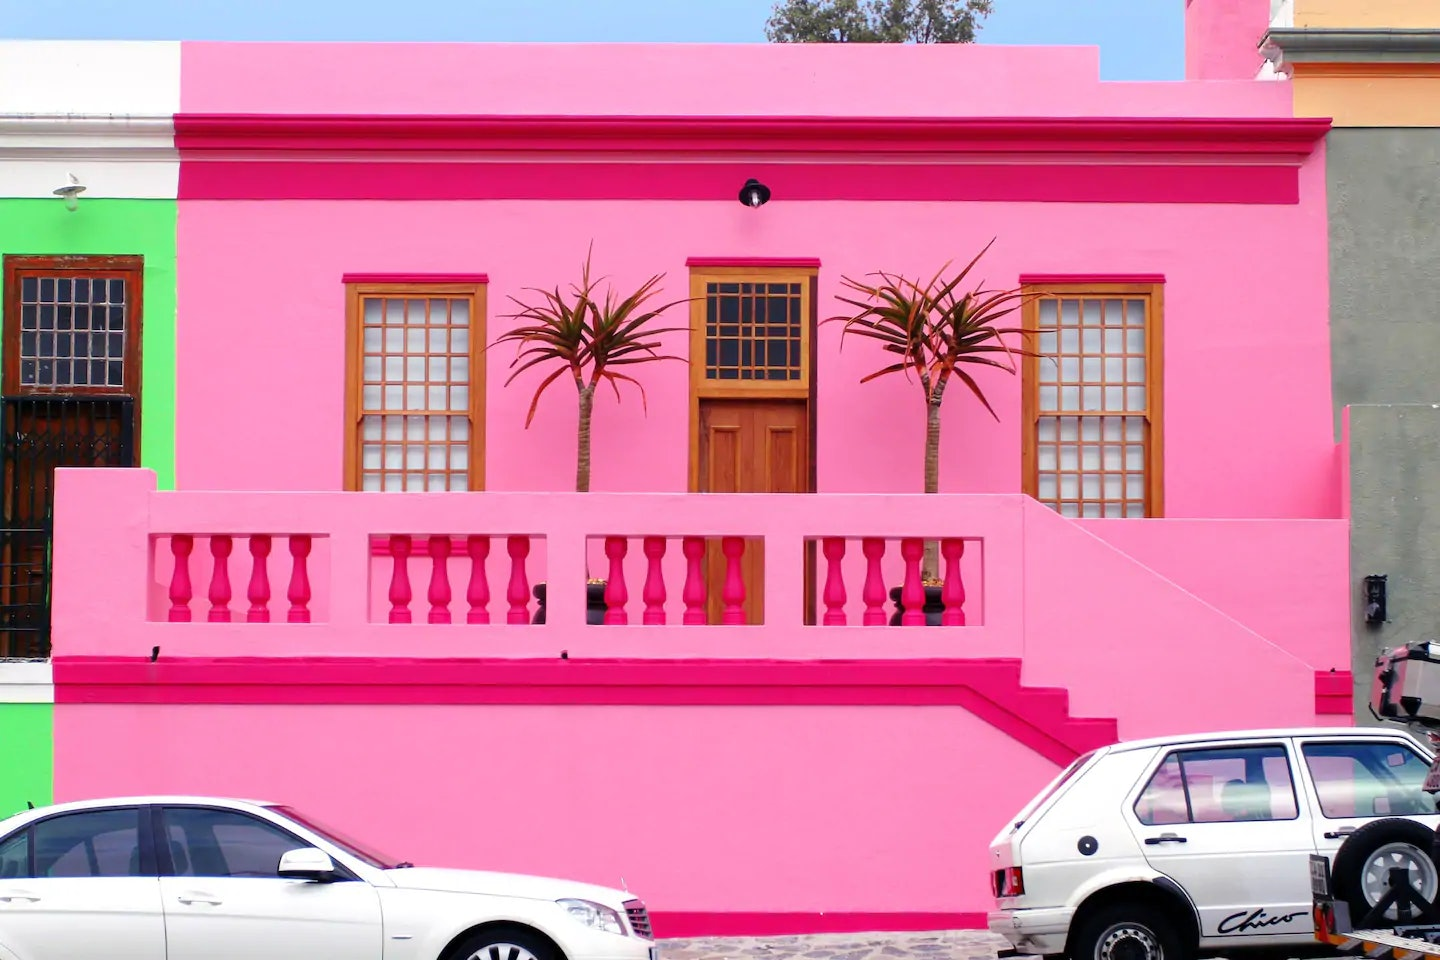 7 Millennial Pink Places On Airbnb For An Unforgettable Bachelorette ...